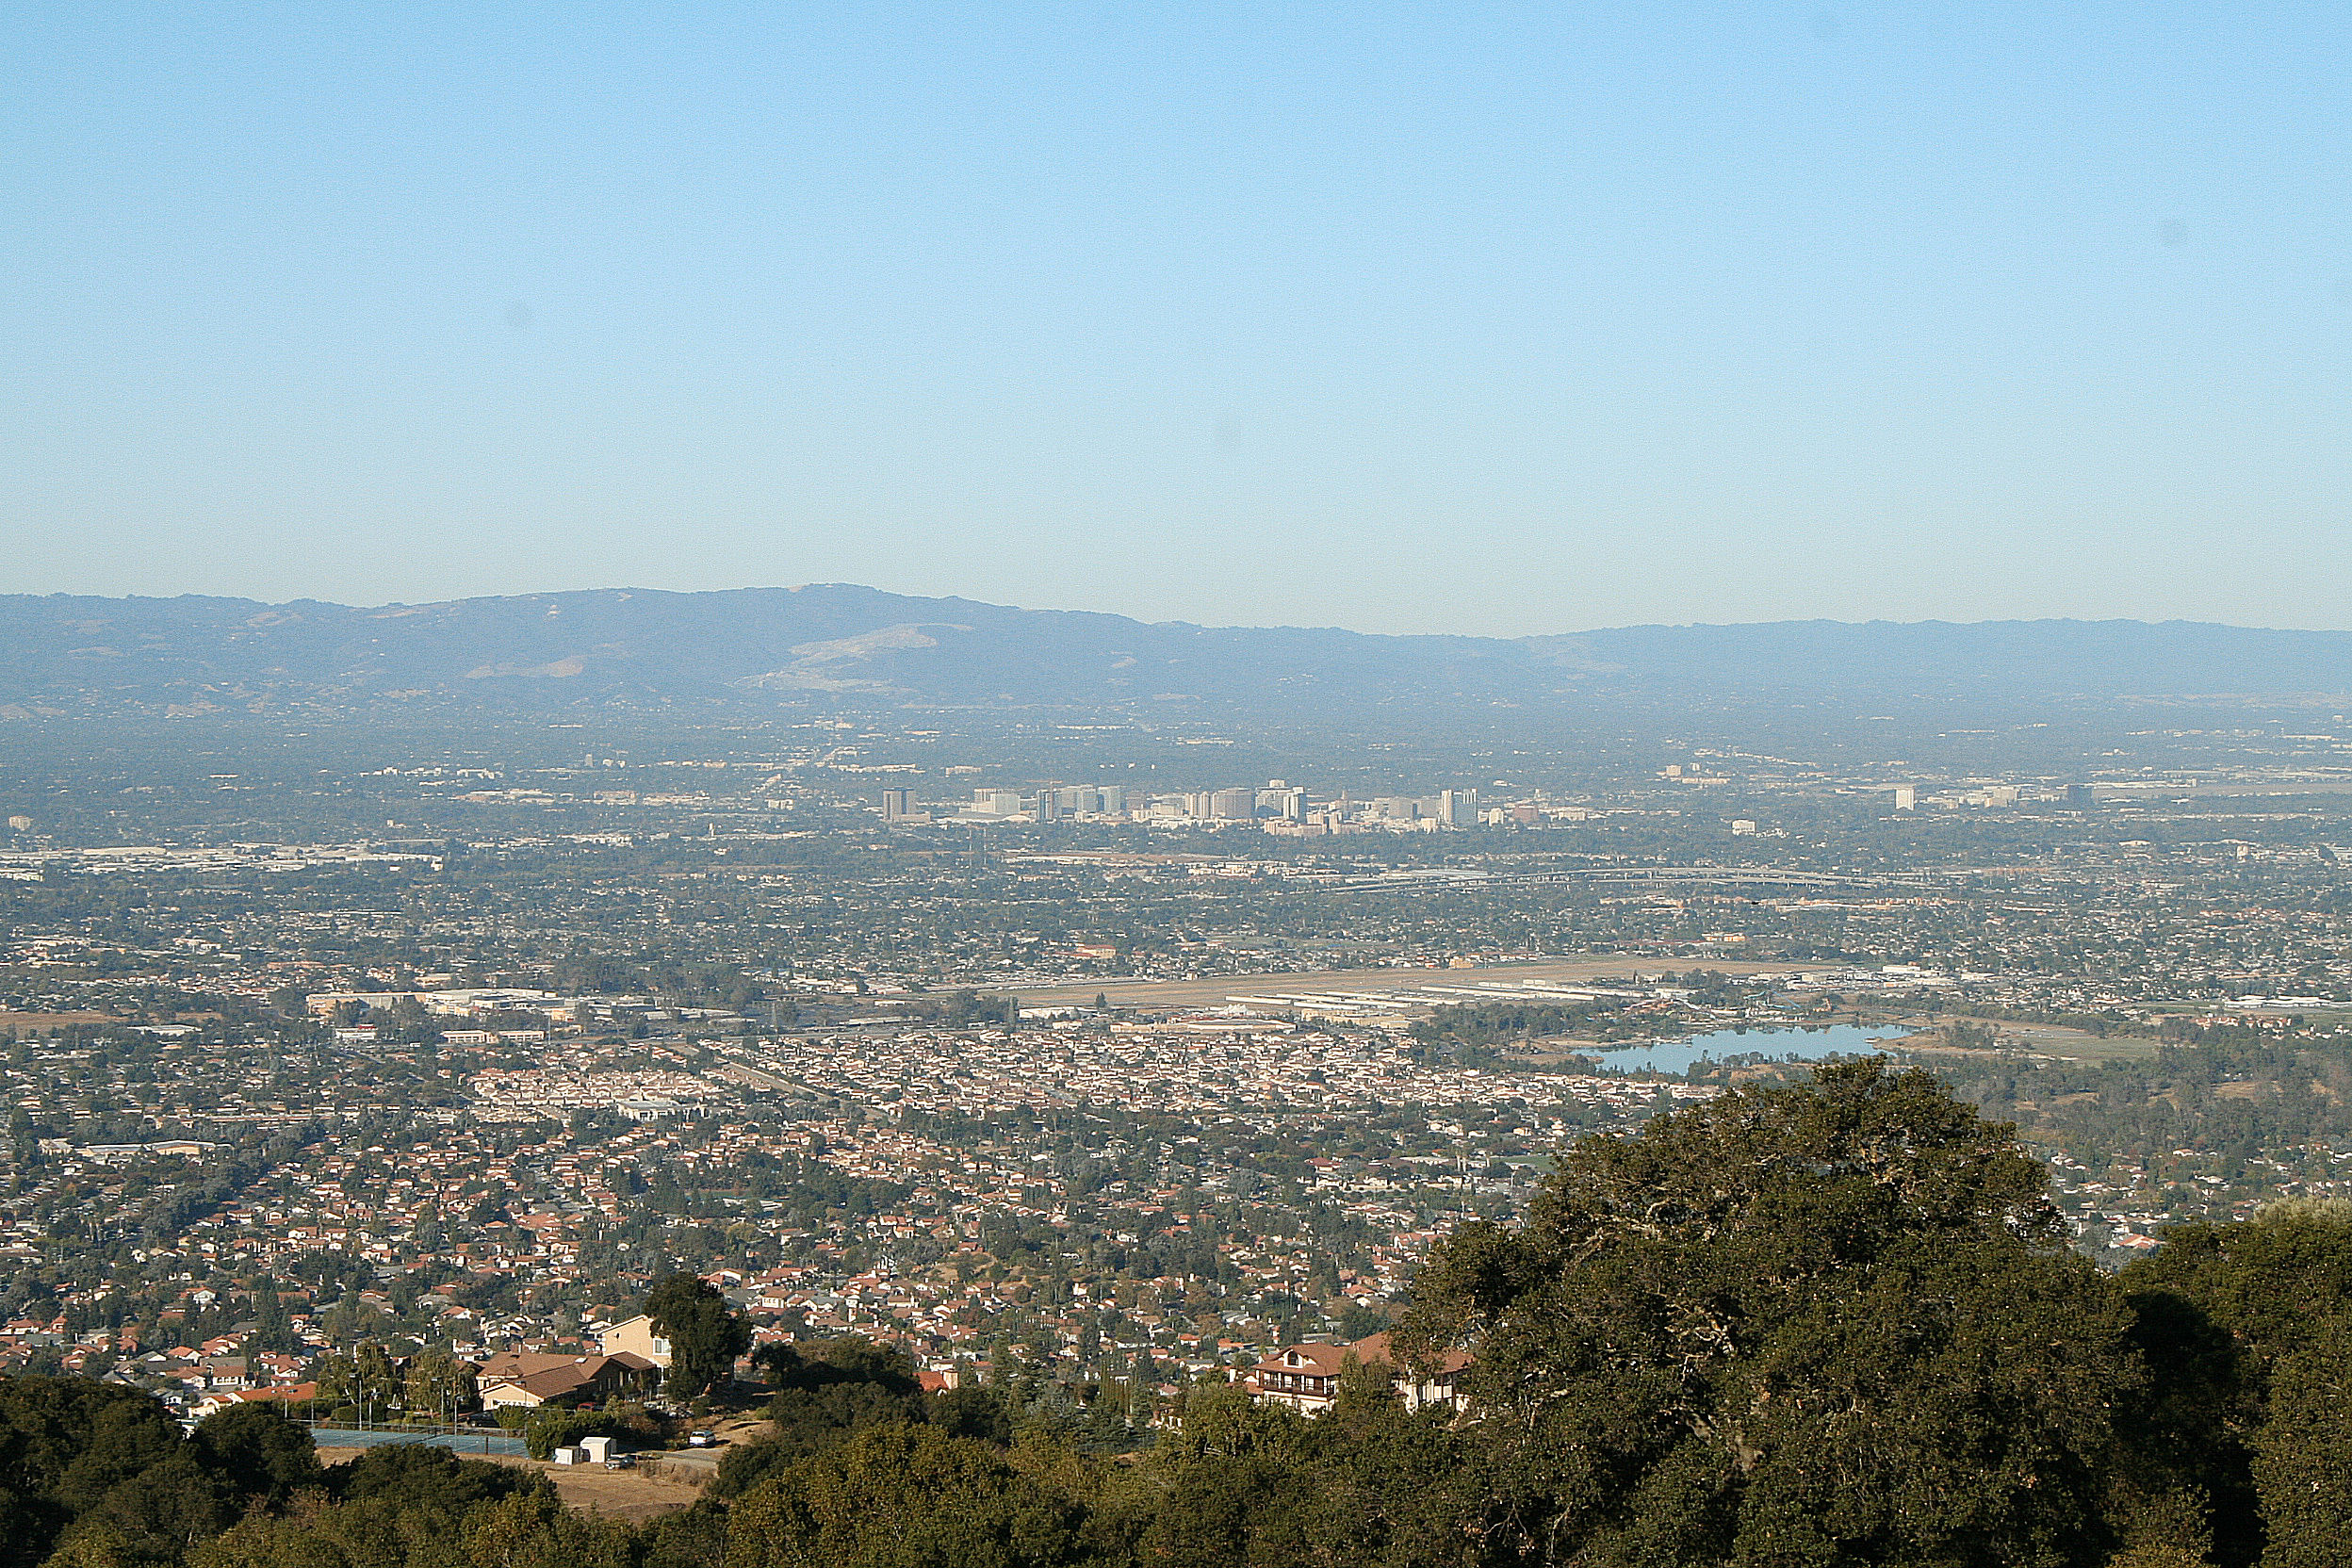 The Santa Clara Valley enjoys a Mediterranean